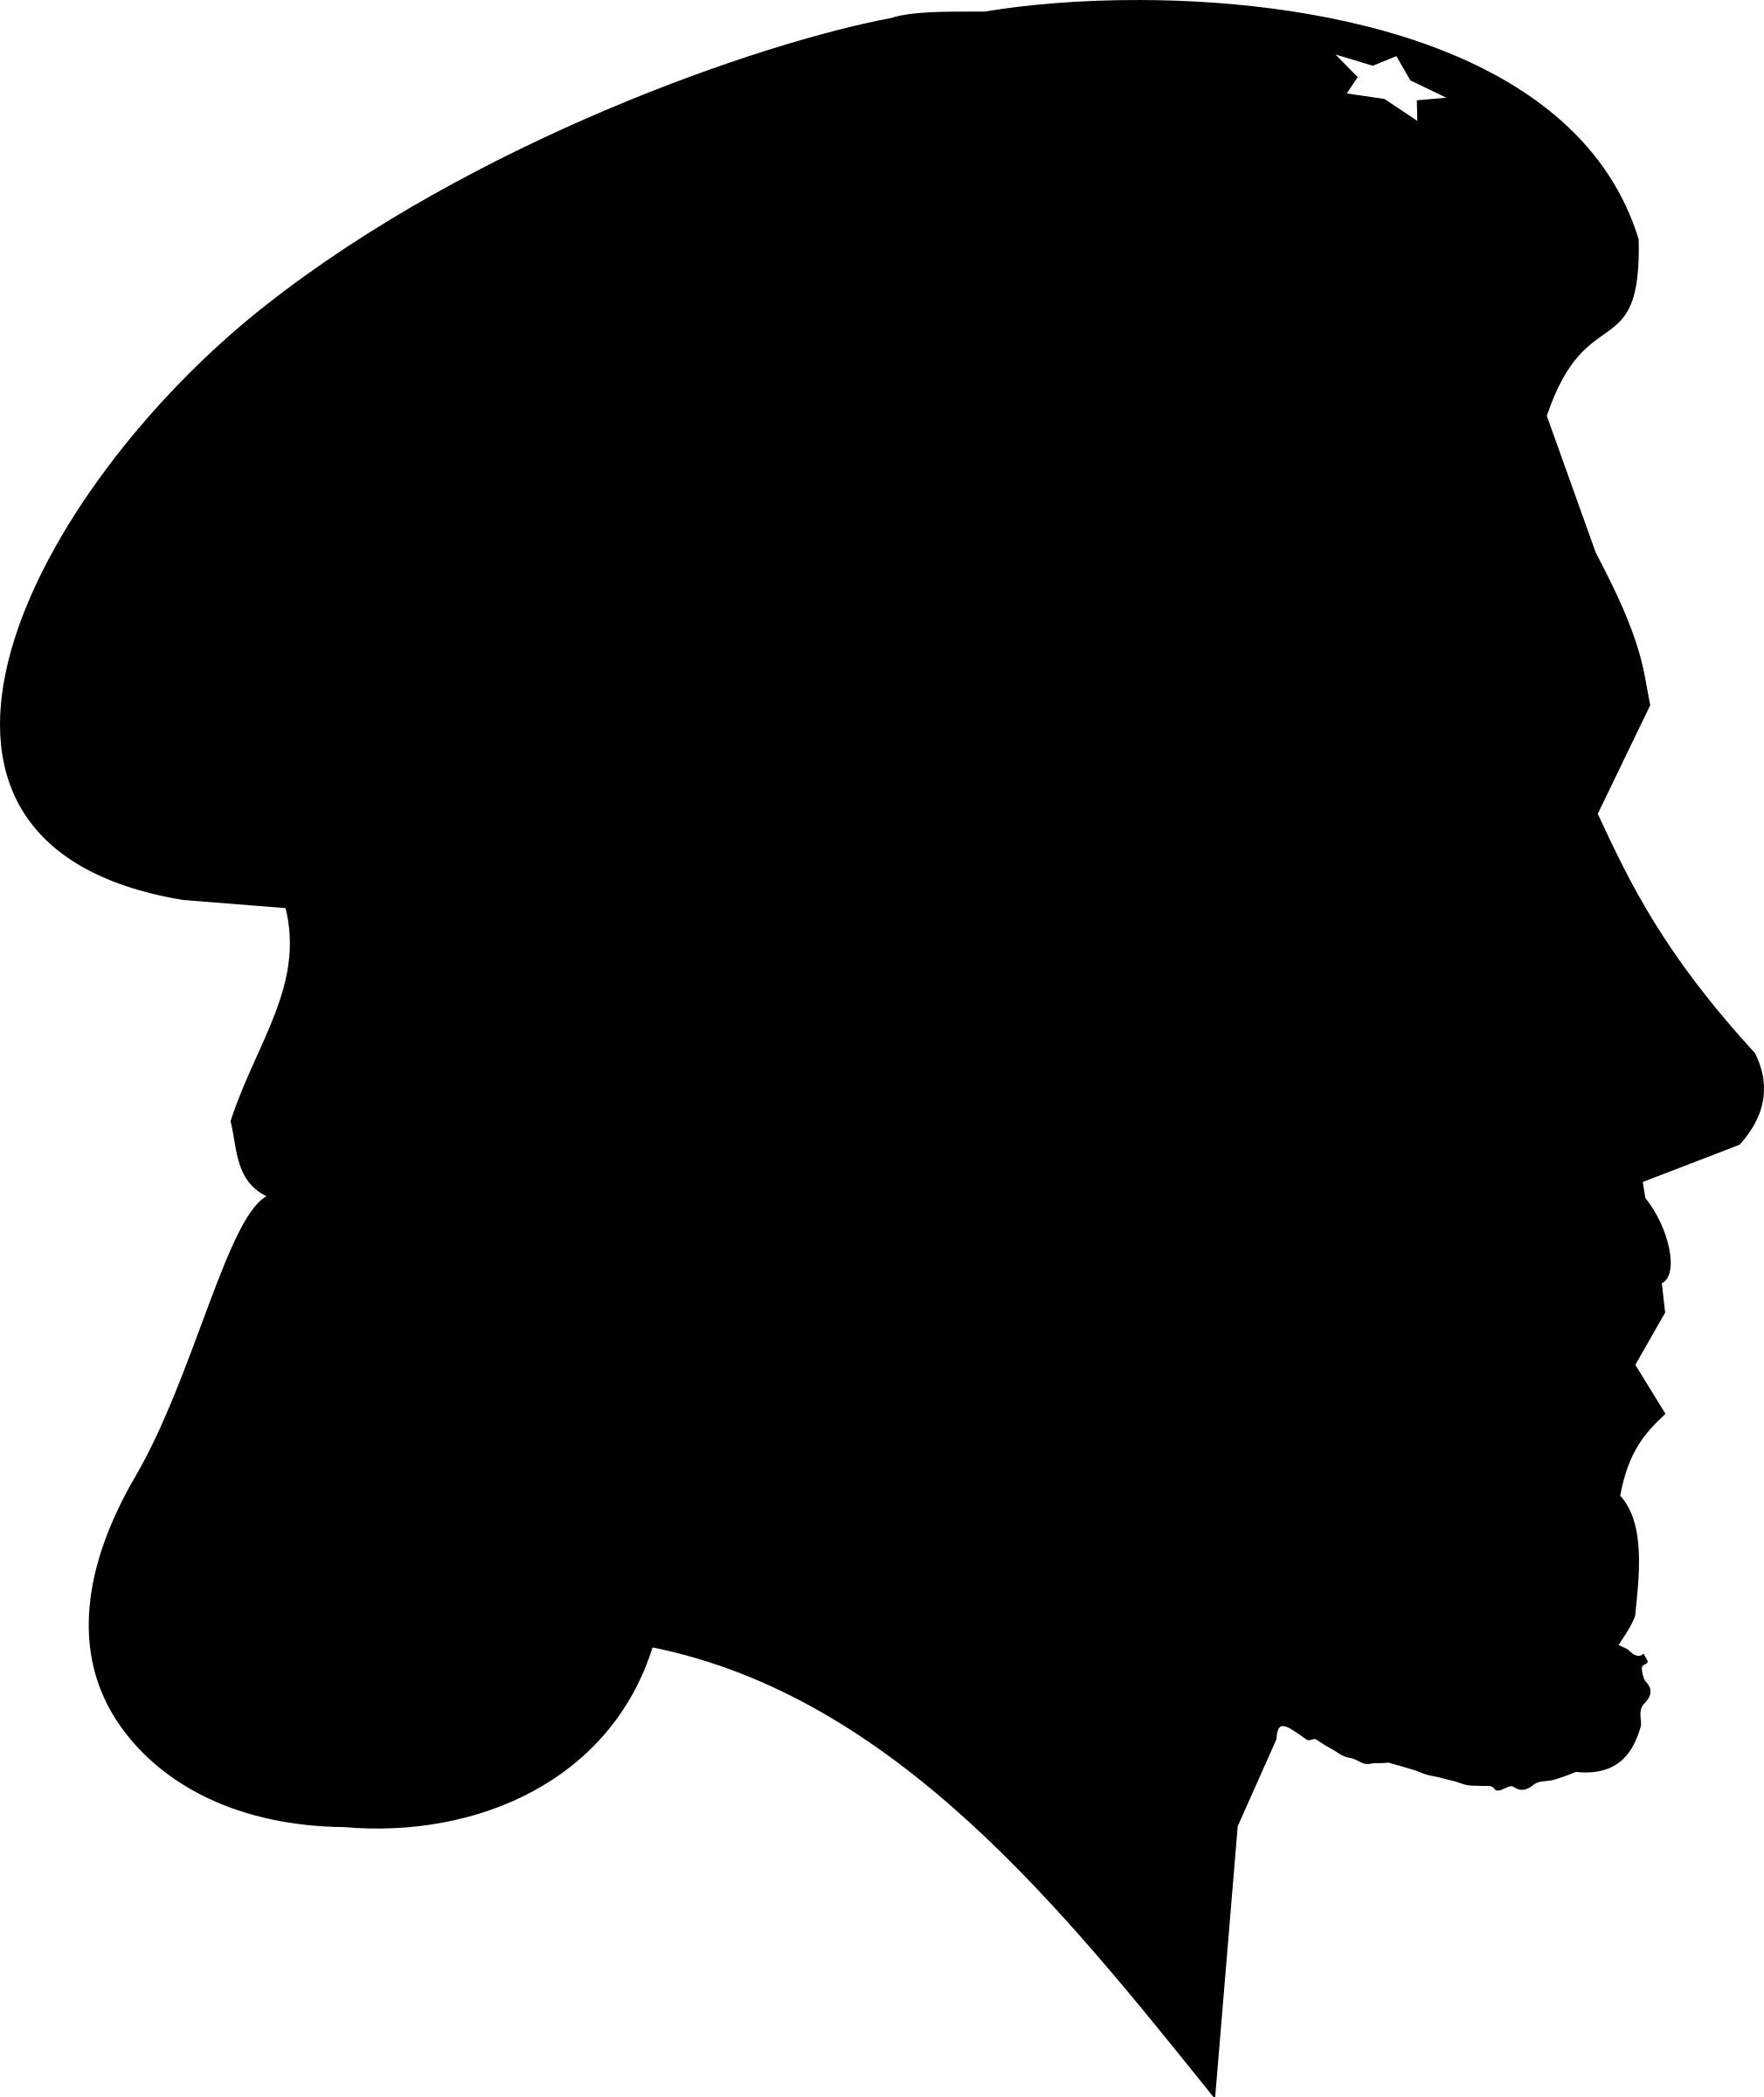 2019x2400 Us Revolutionary War Soldier Silhouette Icons Png